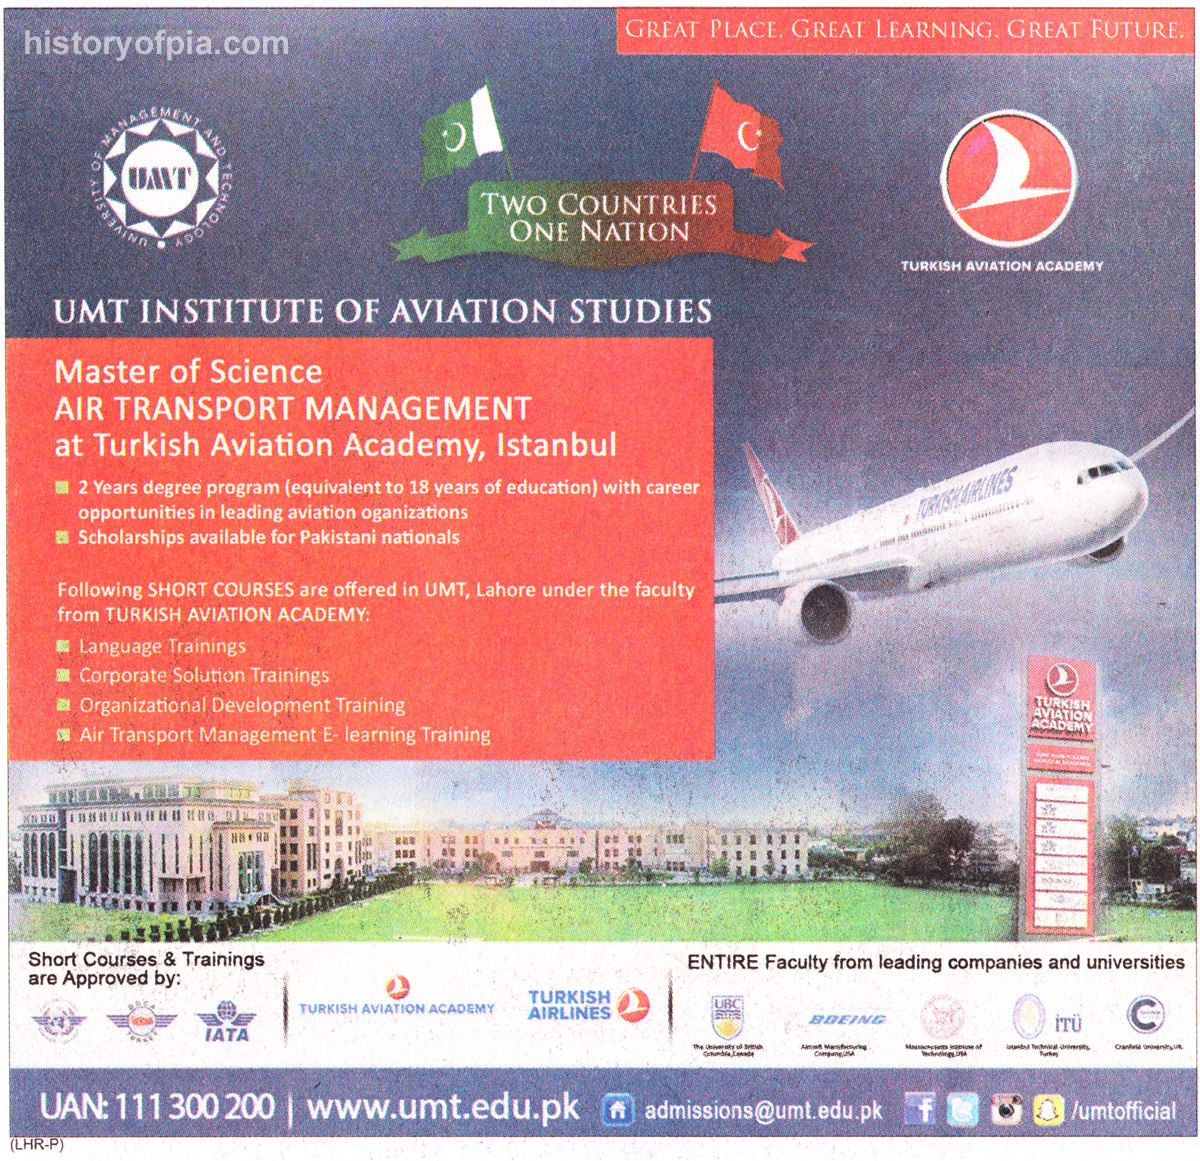 UMT - Turkish Aviation Academy Degree Program & Short